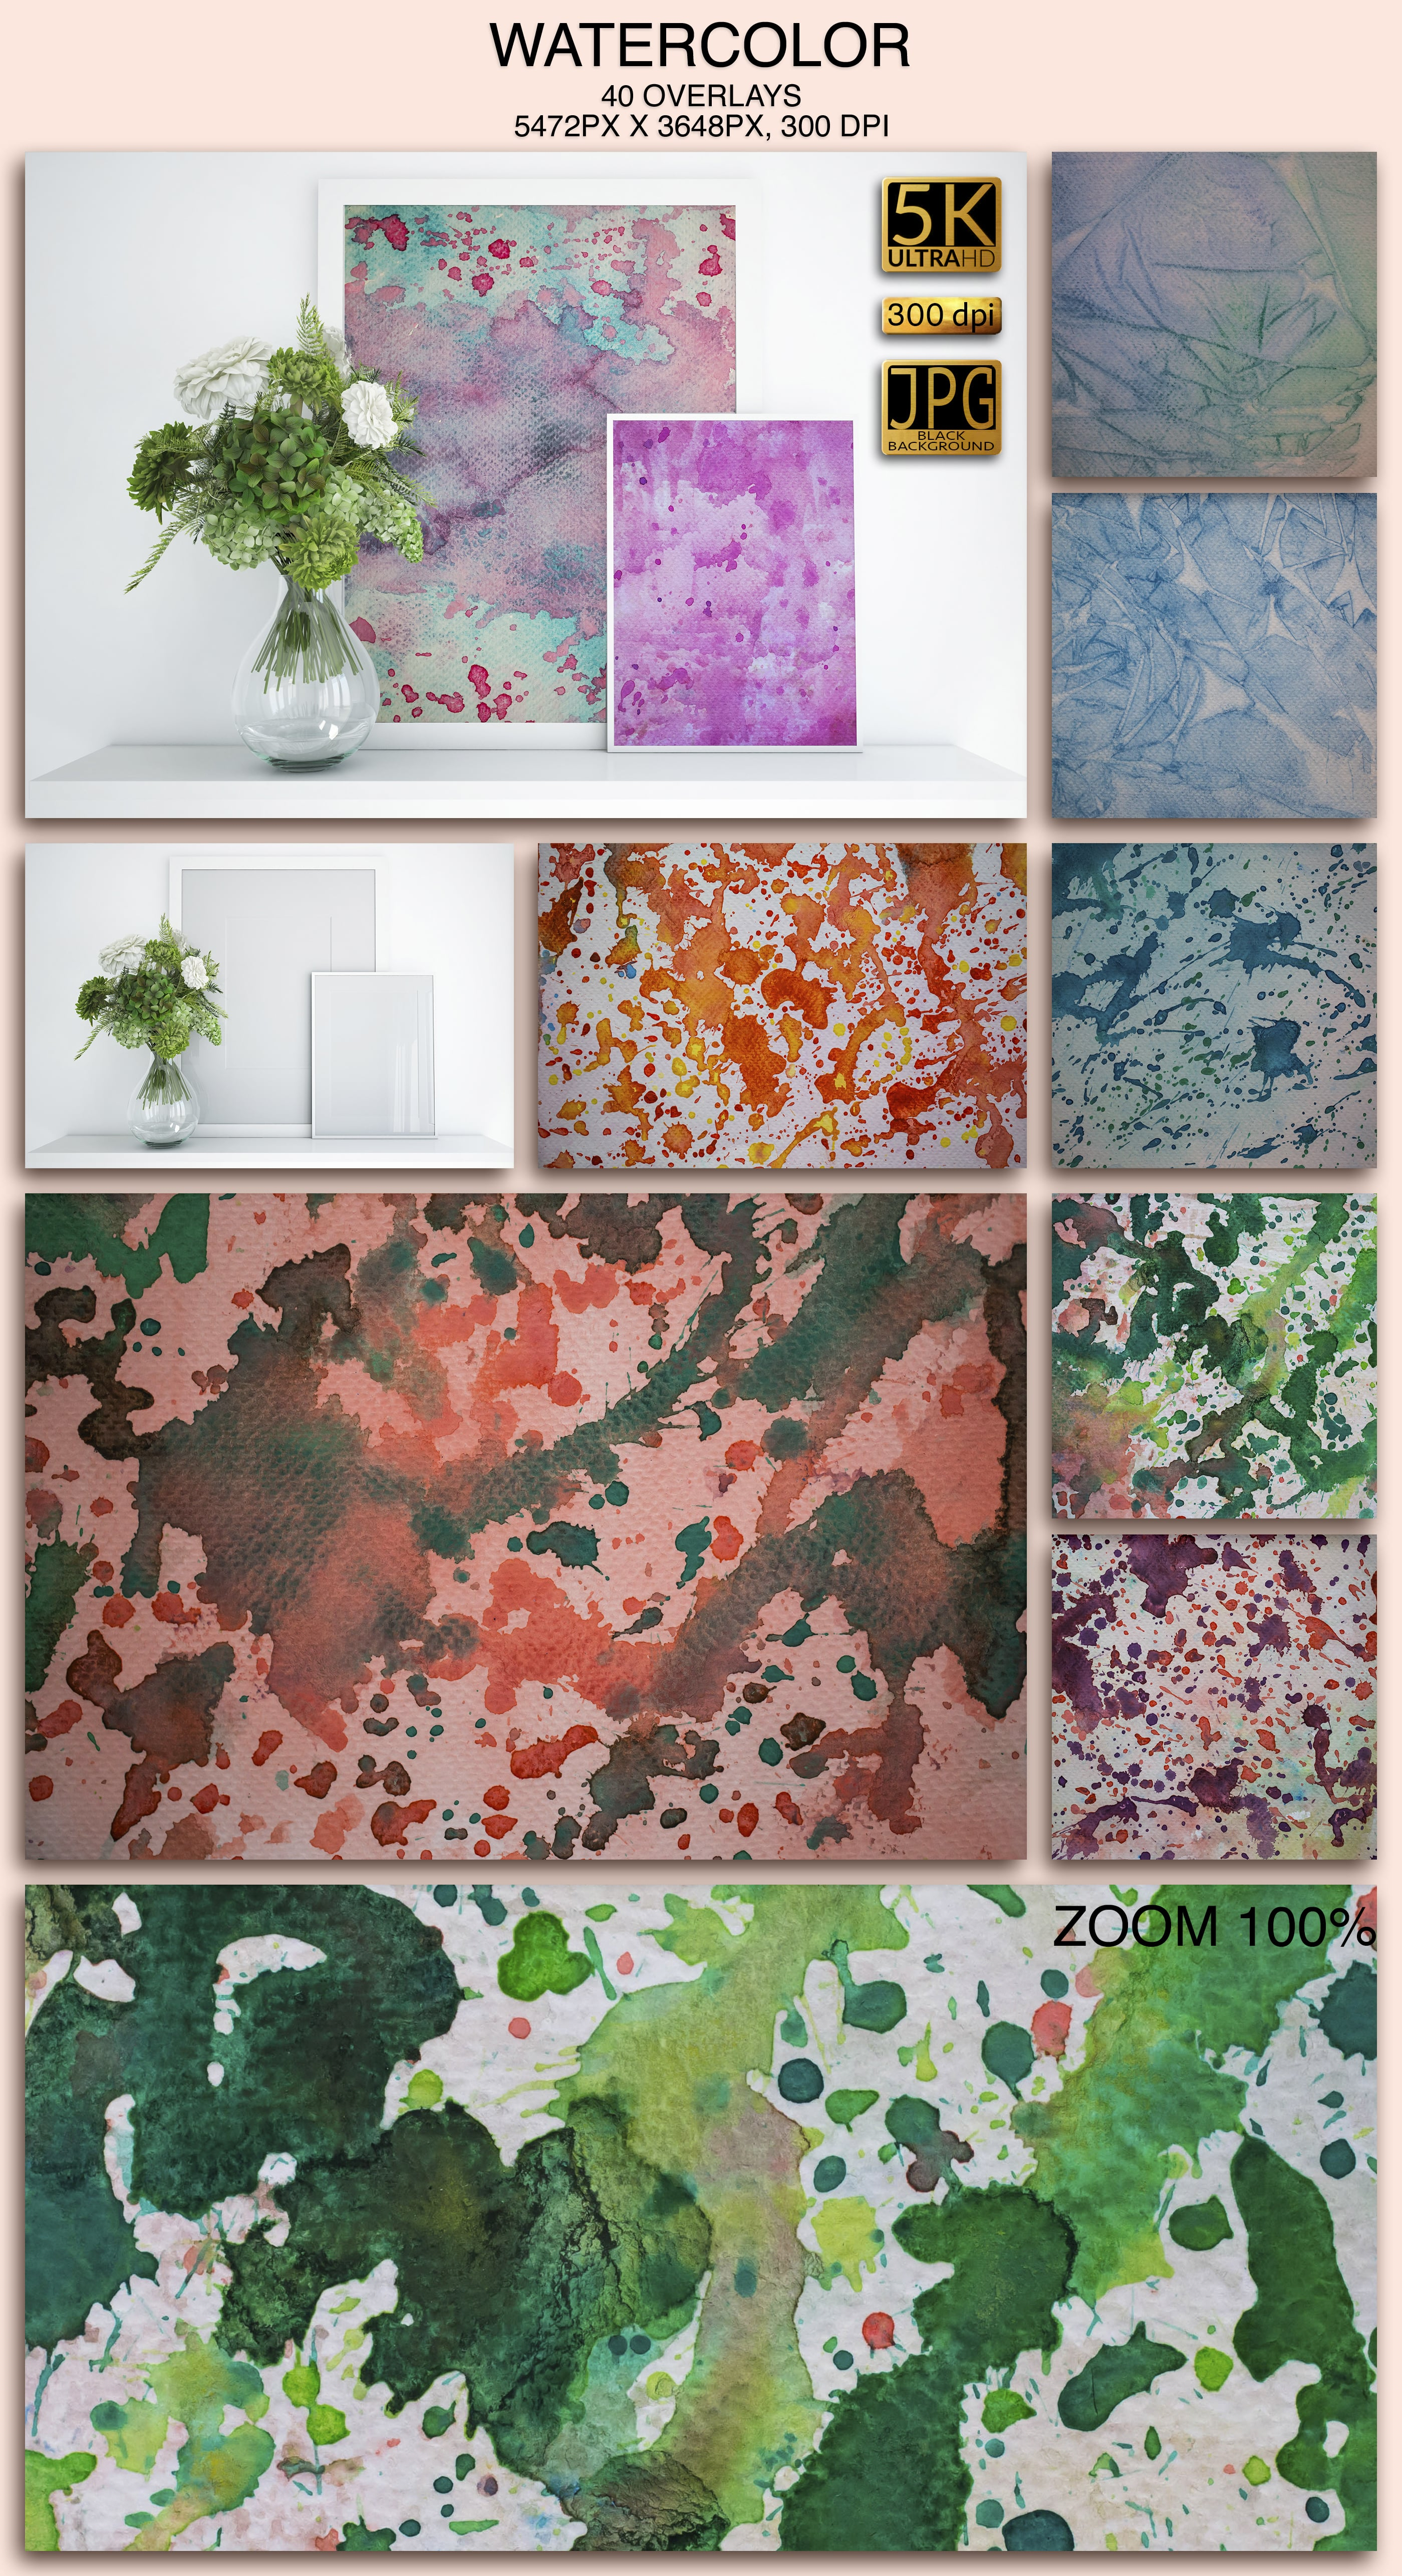 2006 Overlays Photoshop Bundle - Watercolor